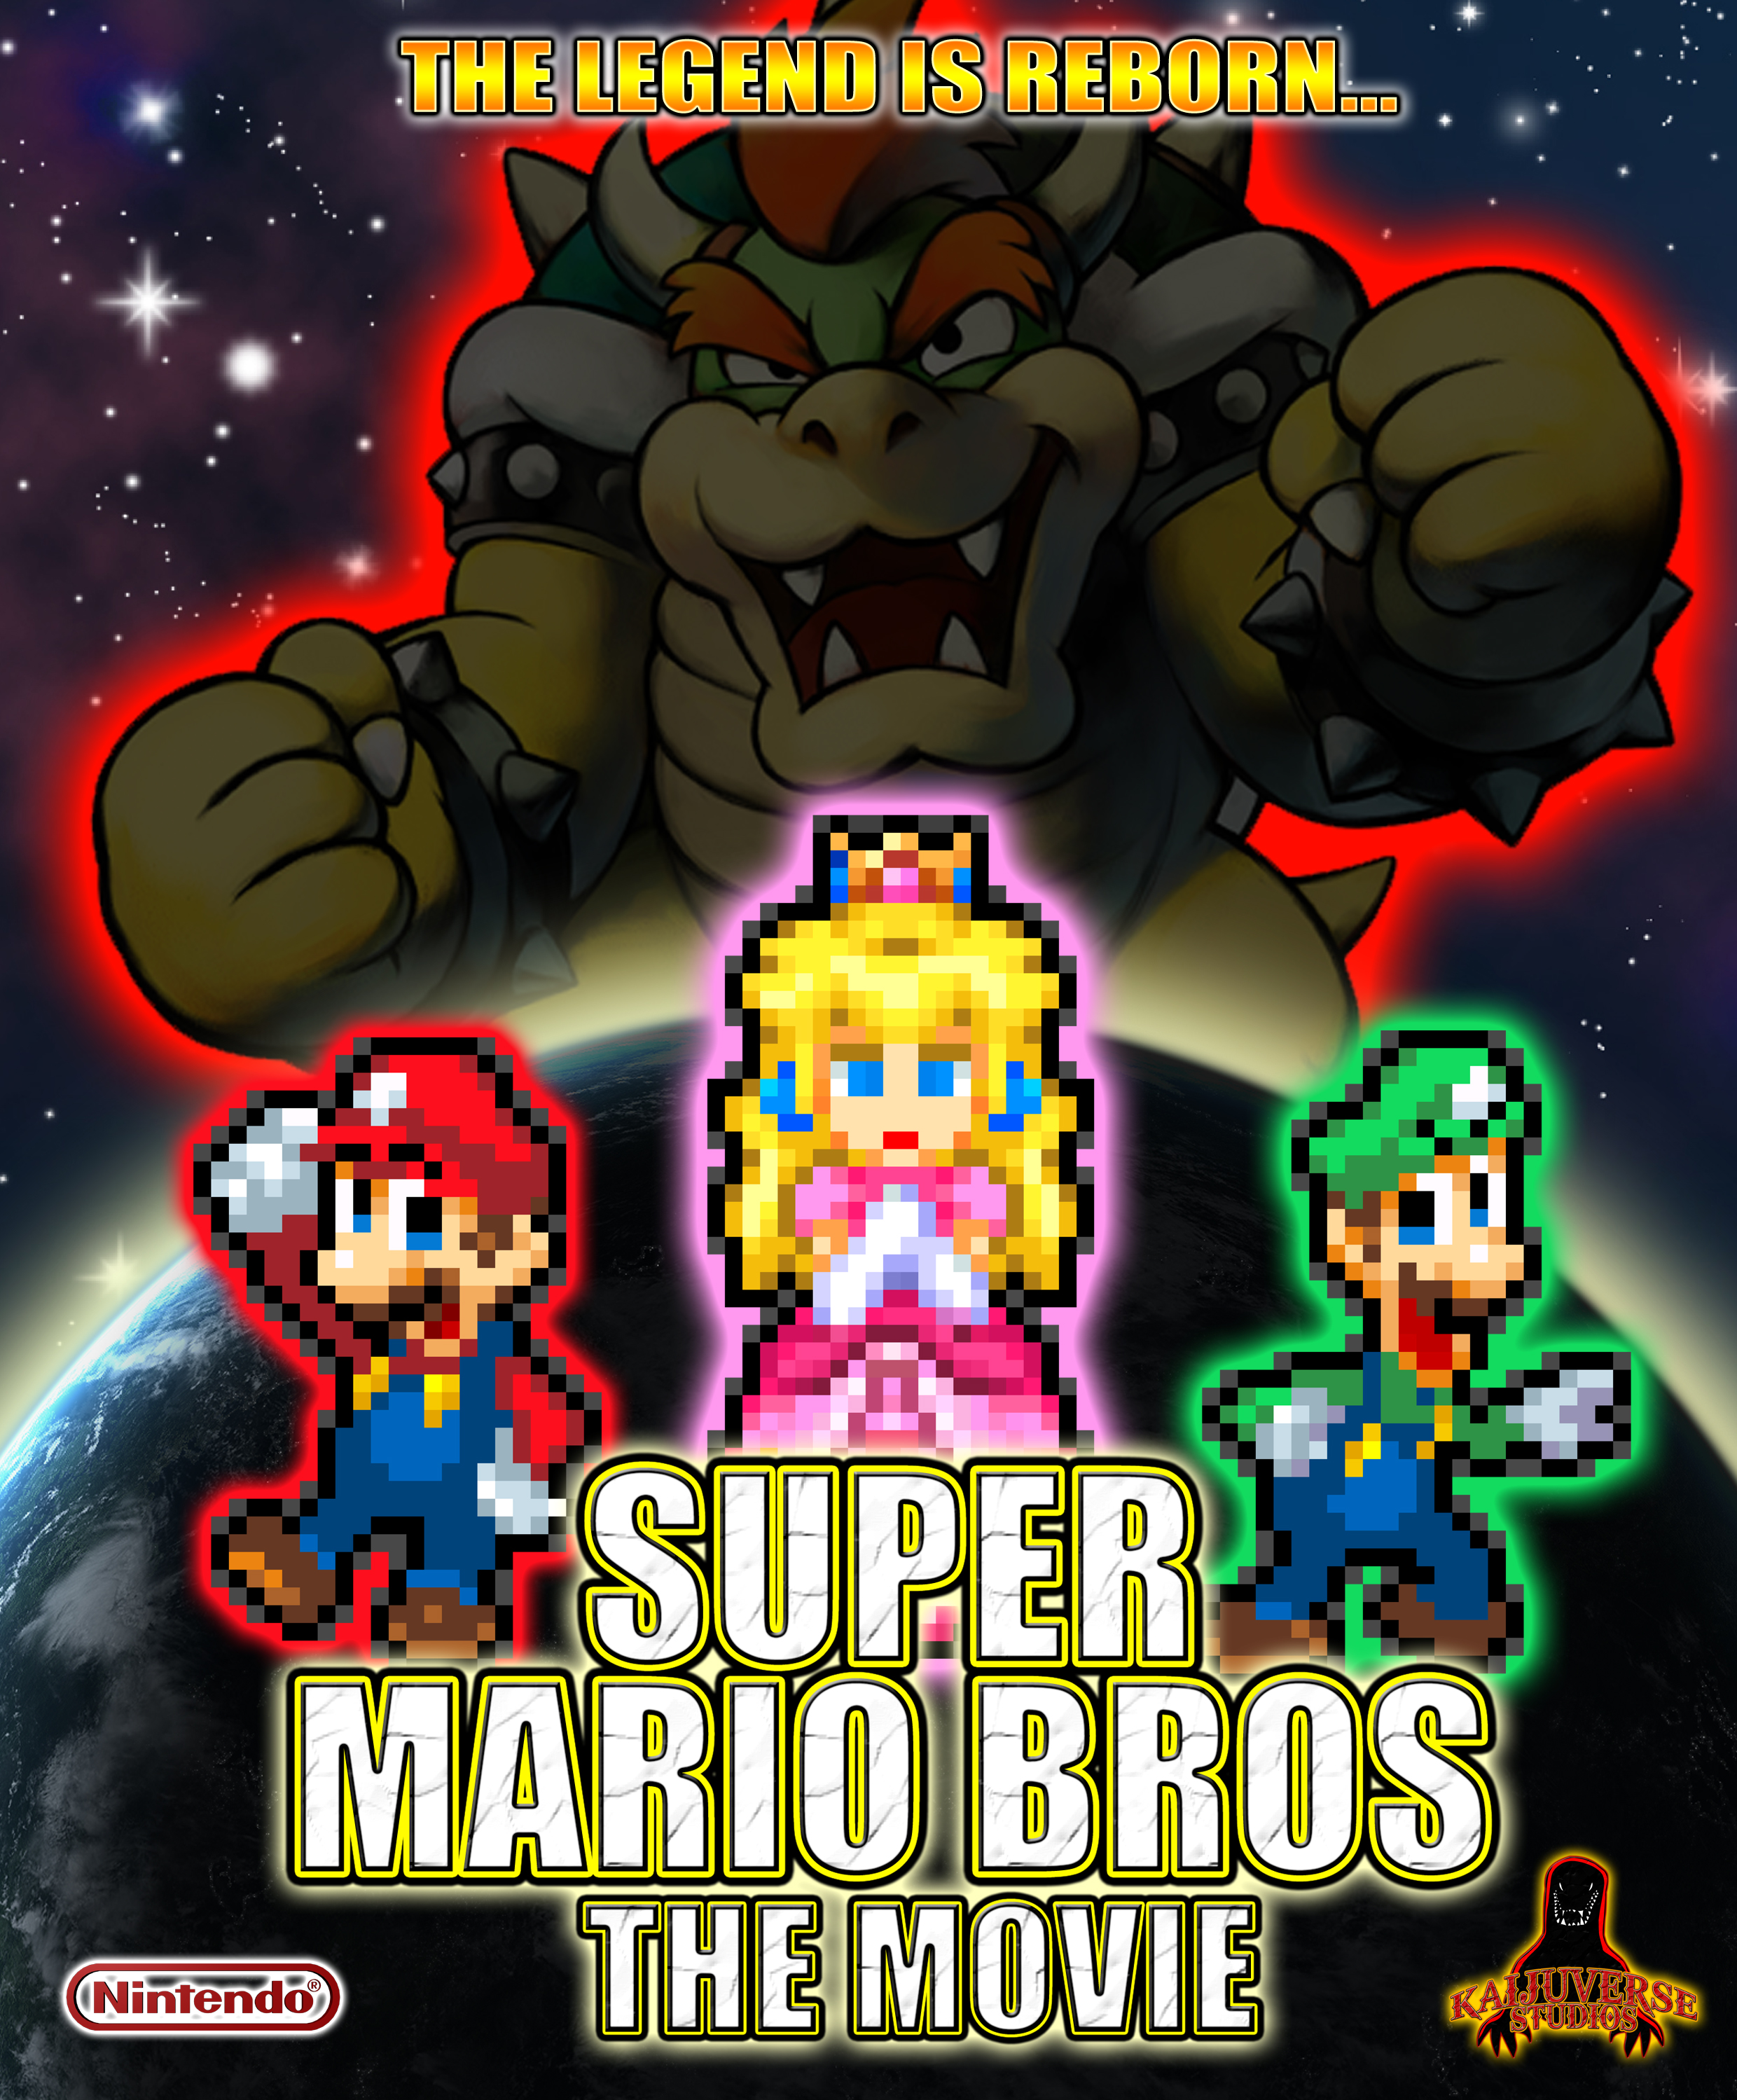 Super Mario Bros The Movie Final Poster by KingAsylus91